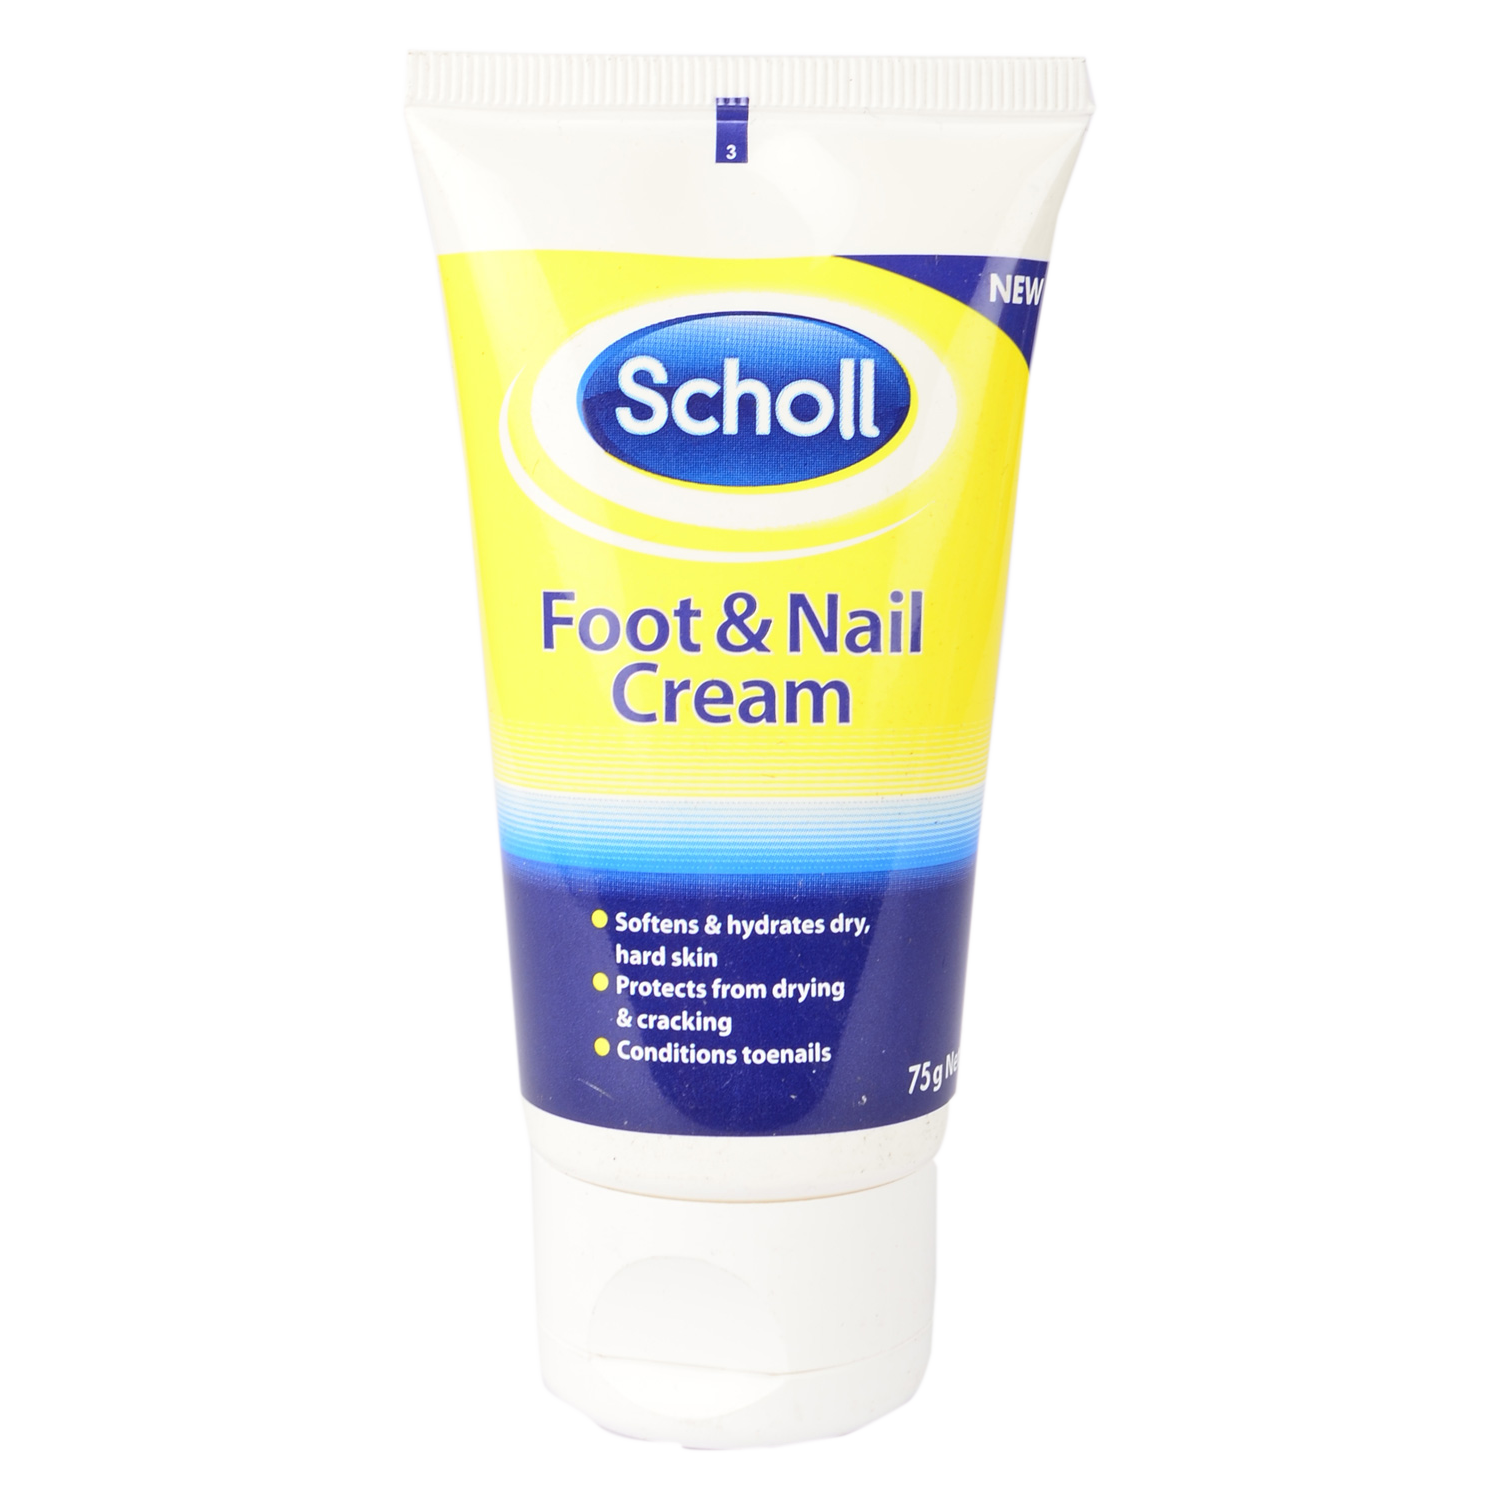 dr scholls products in india